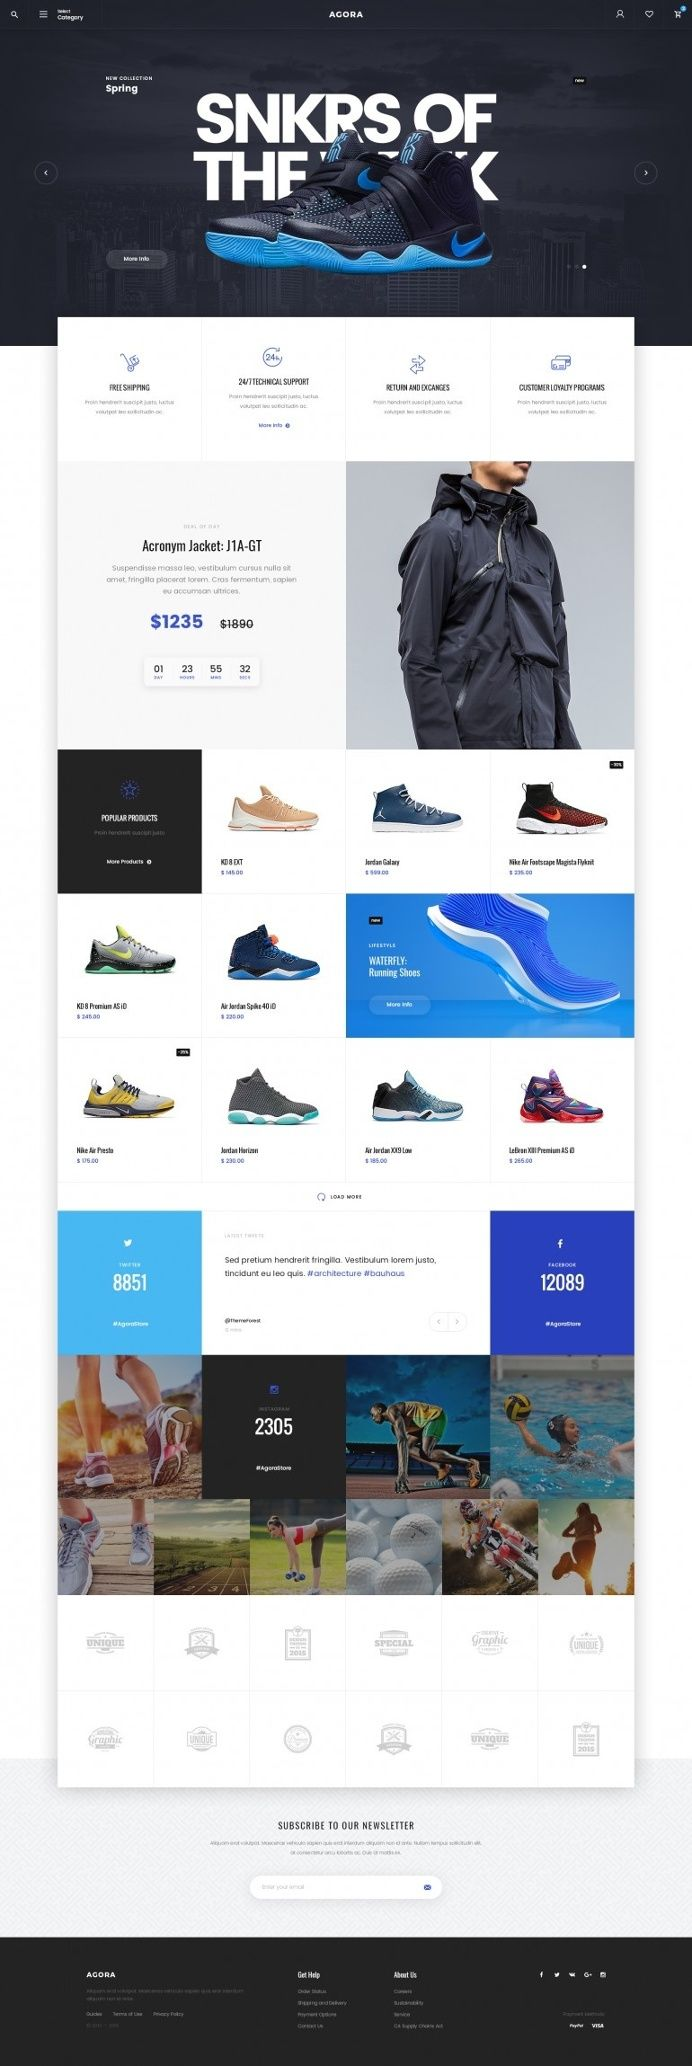 Designspiration — Design Inspiration simple and clean ecommerce web layout ui user interface shoes sneakers blue black white